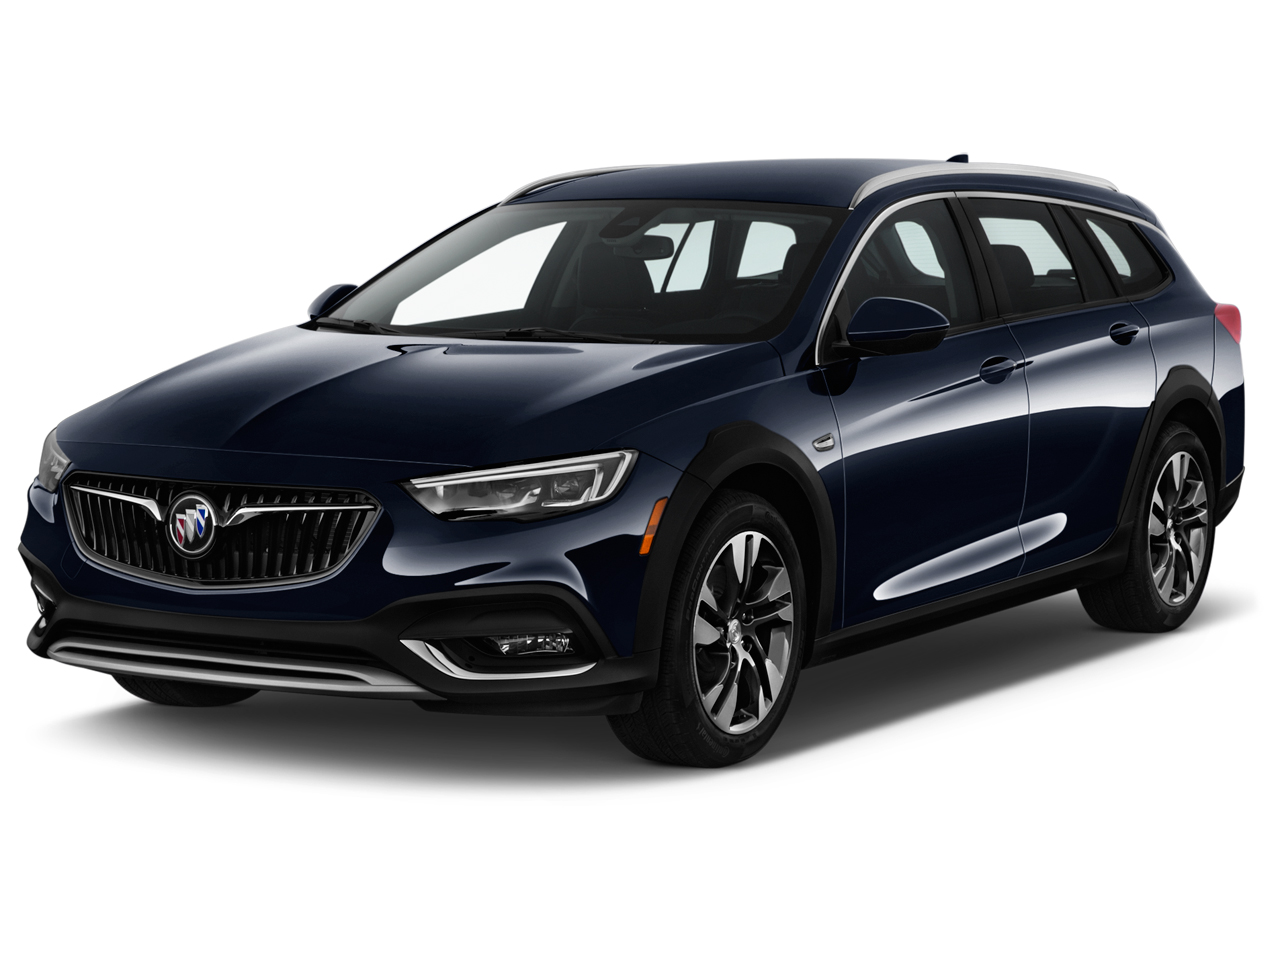 new and used buick regal tourx prices photos reviews specs the car connection. Black Bedroom Furniture Sets. Home Design Ideas